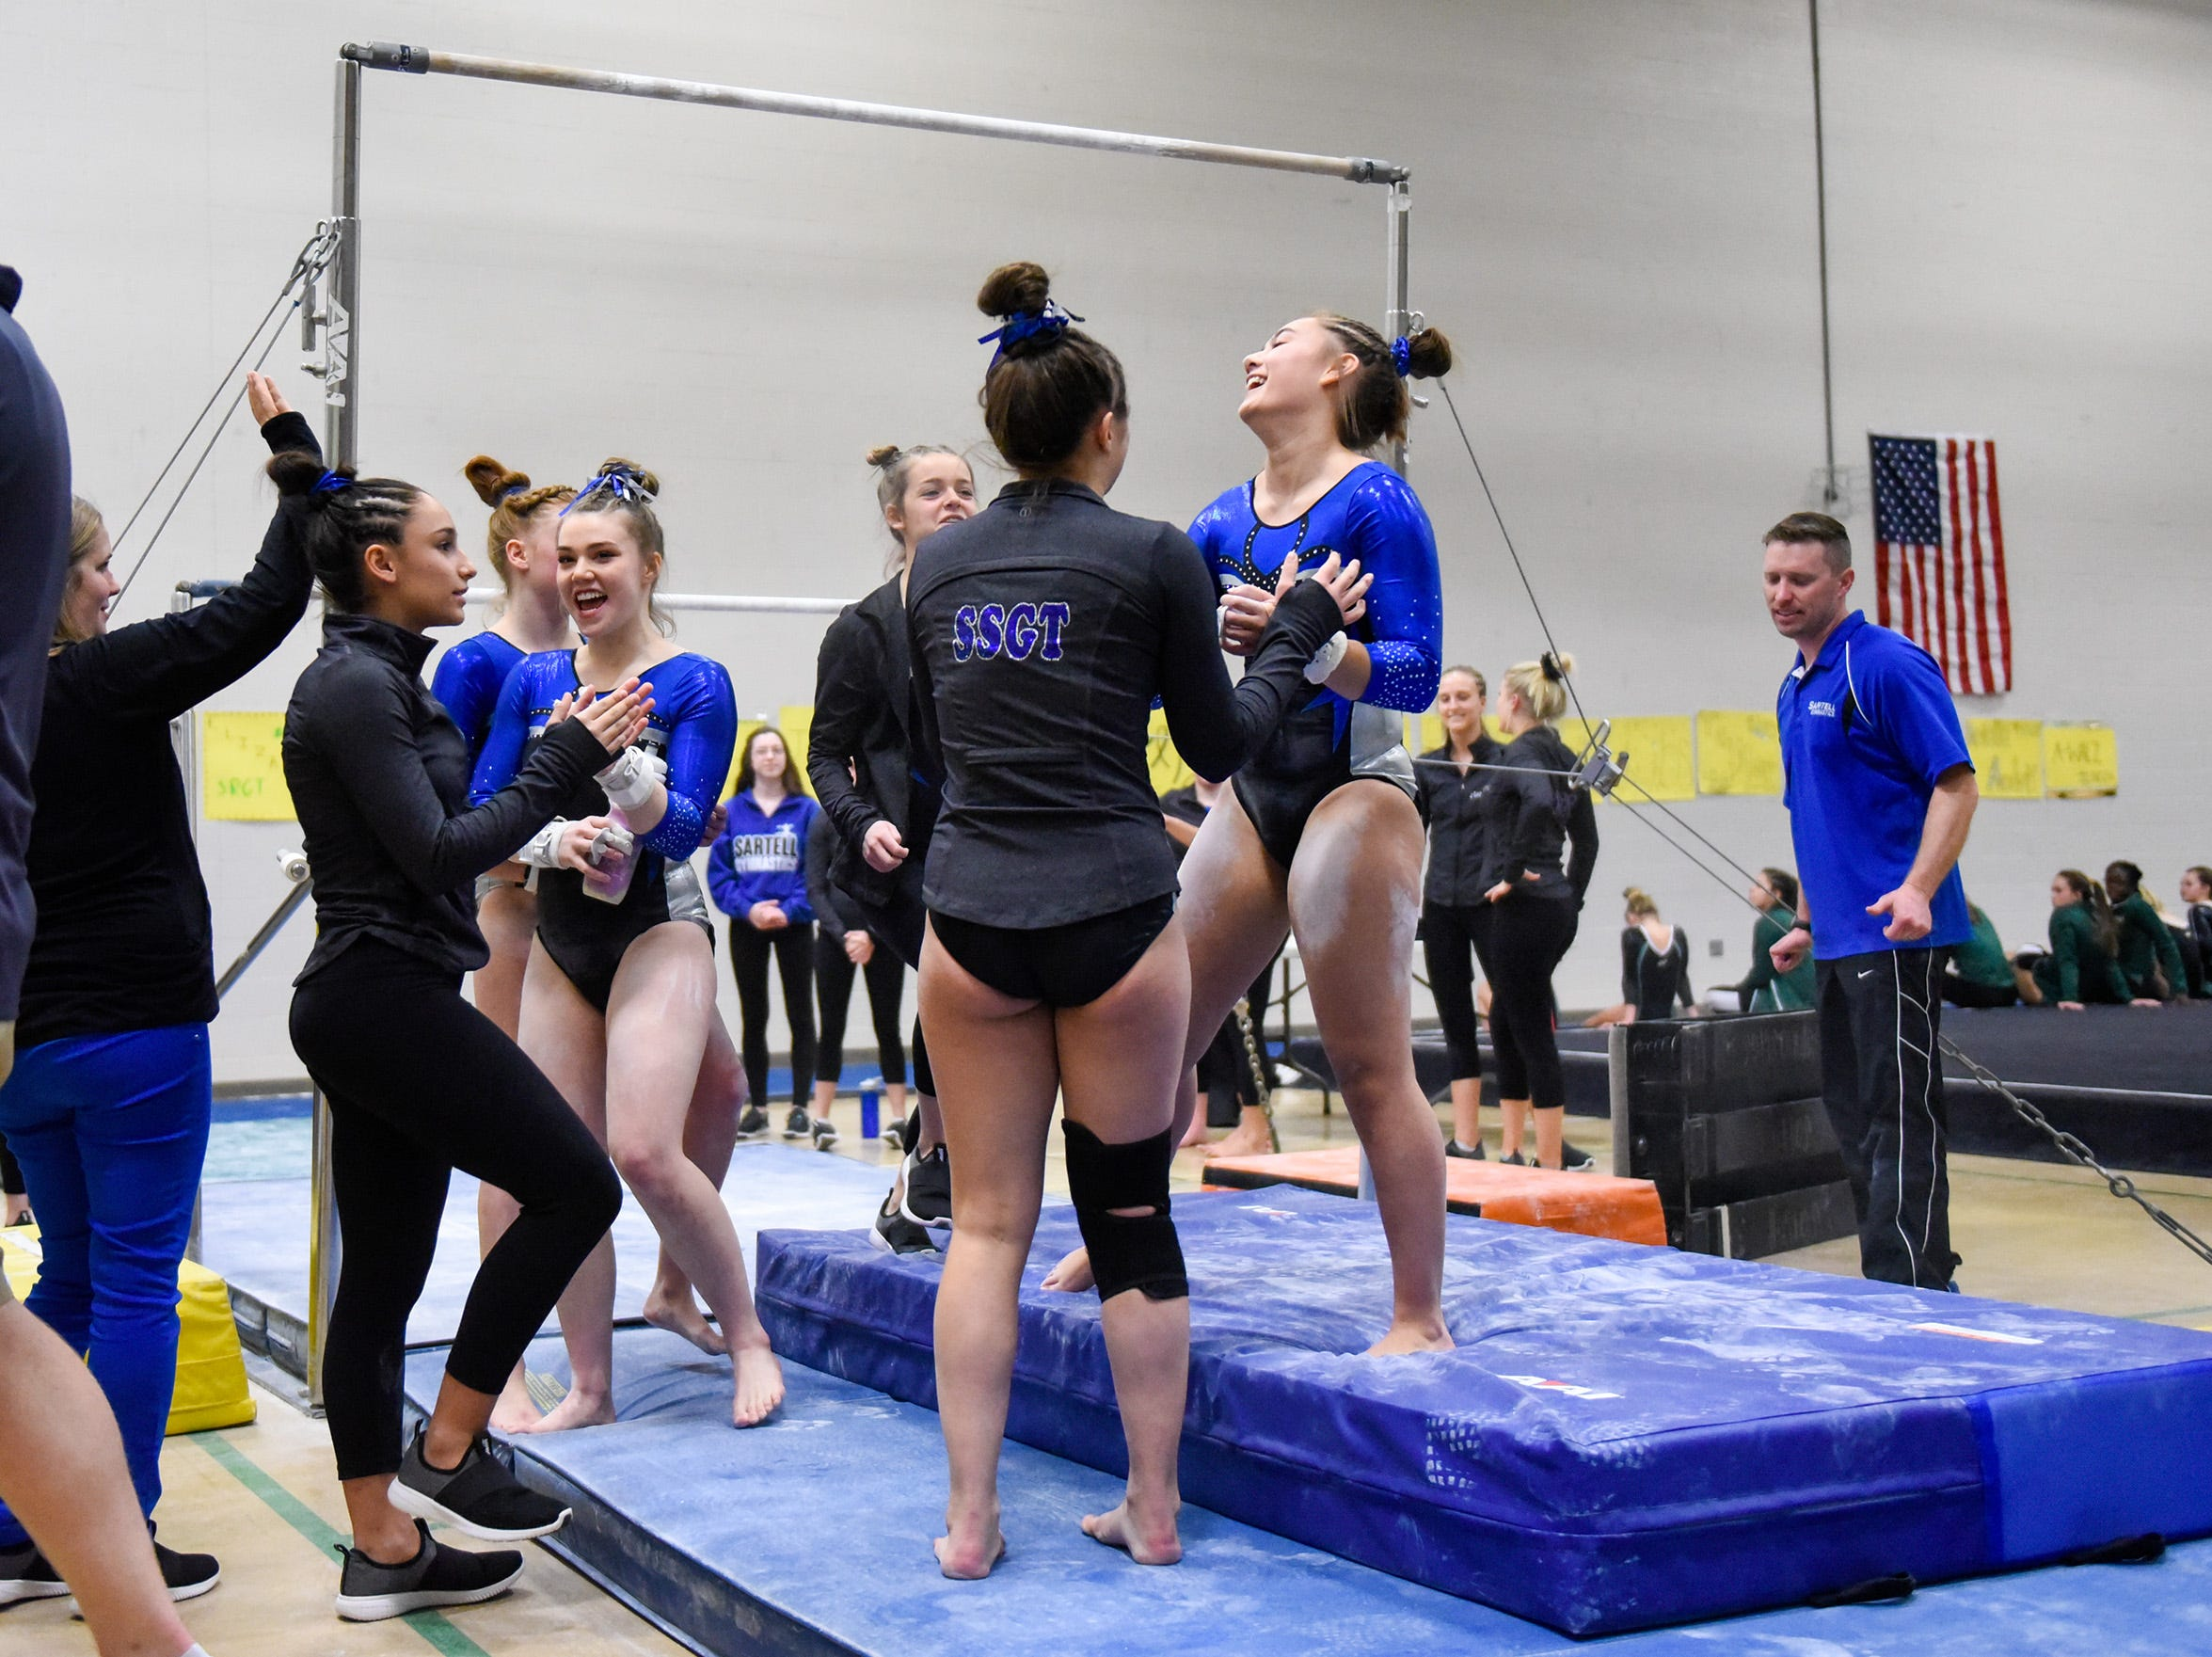 Sartell's Carley Yang is met by teammates after competing on the bars Thursday, Jan. 3, at the Sauk Rapids-Rice High School.